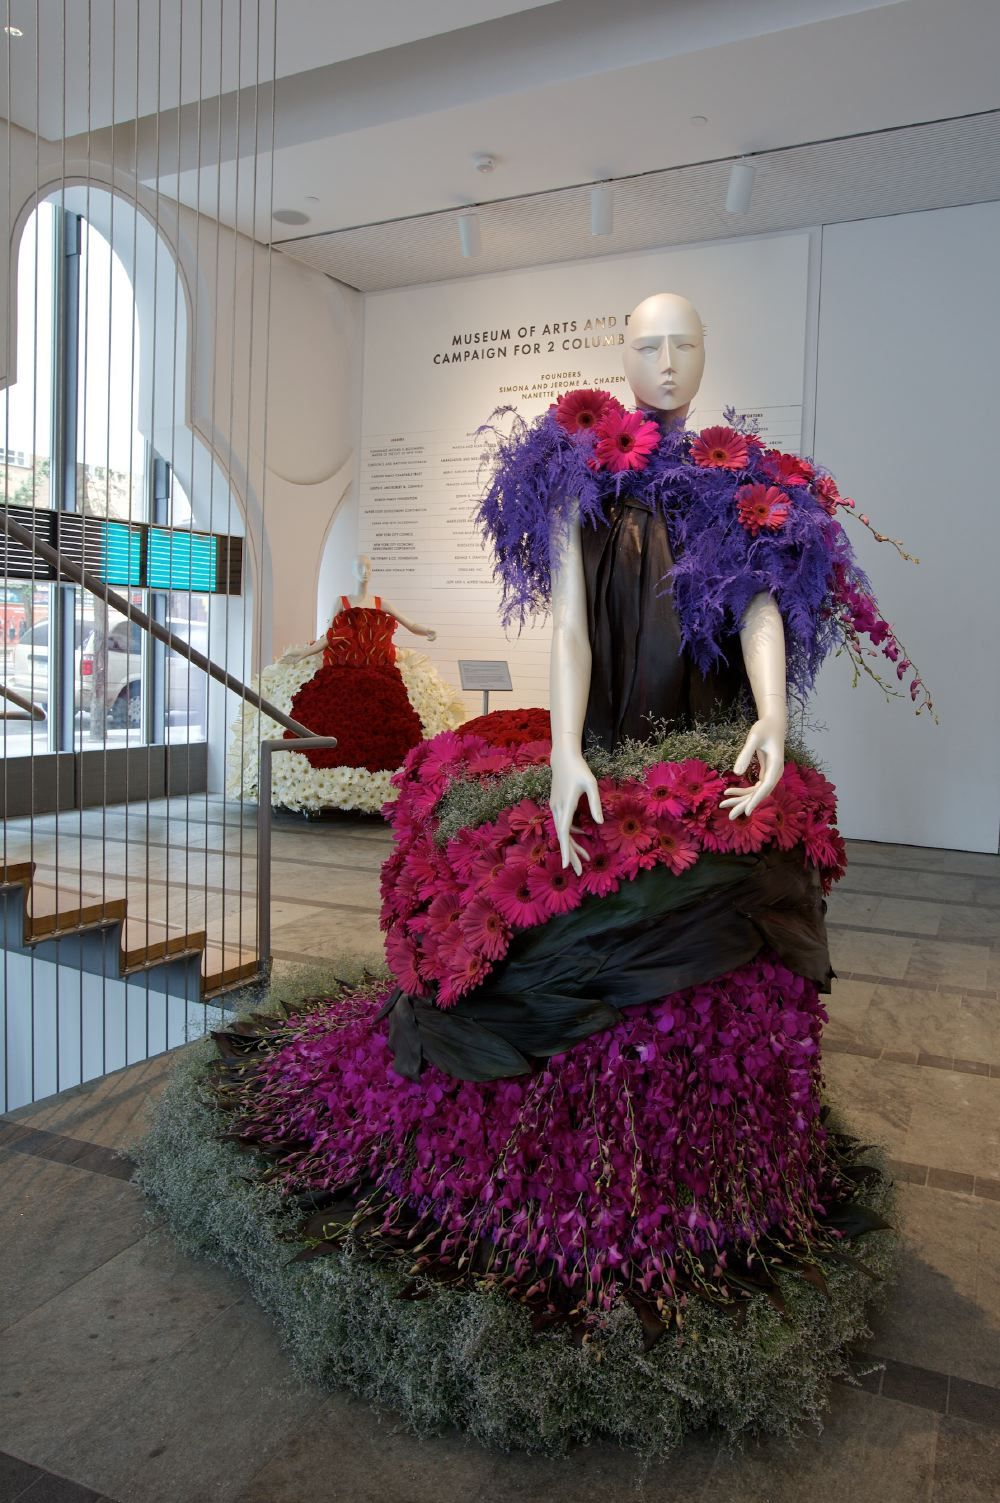 Flowerdresses by Niels van Eijk and Miriam van der Lubbe at the Museum of Arts & Design - New York City